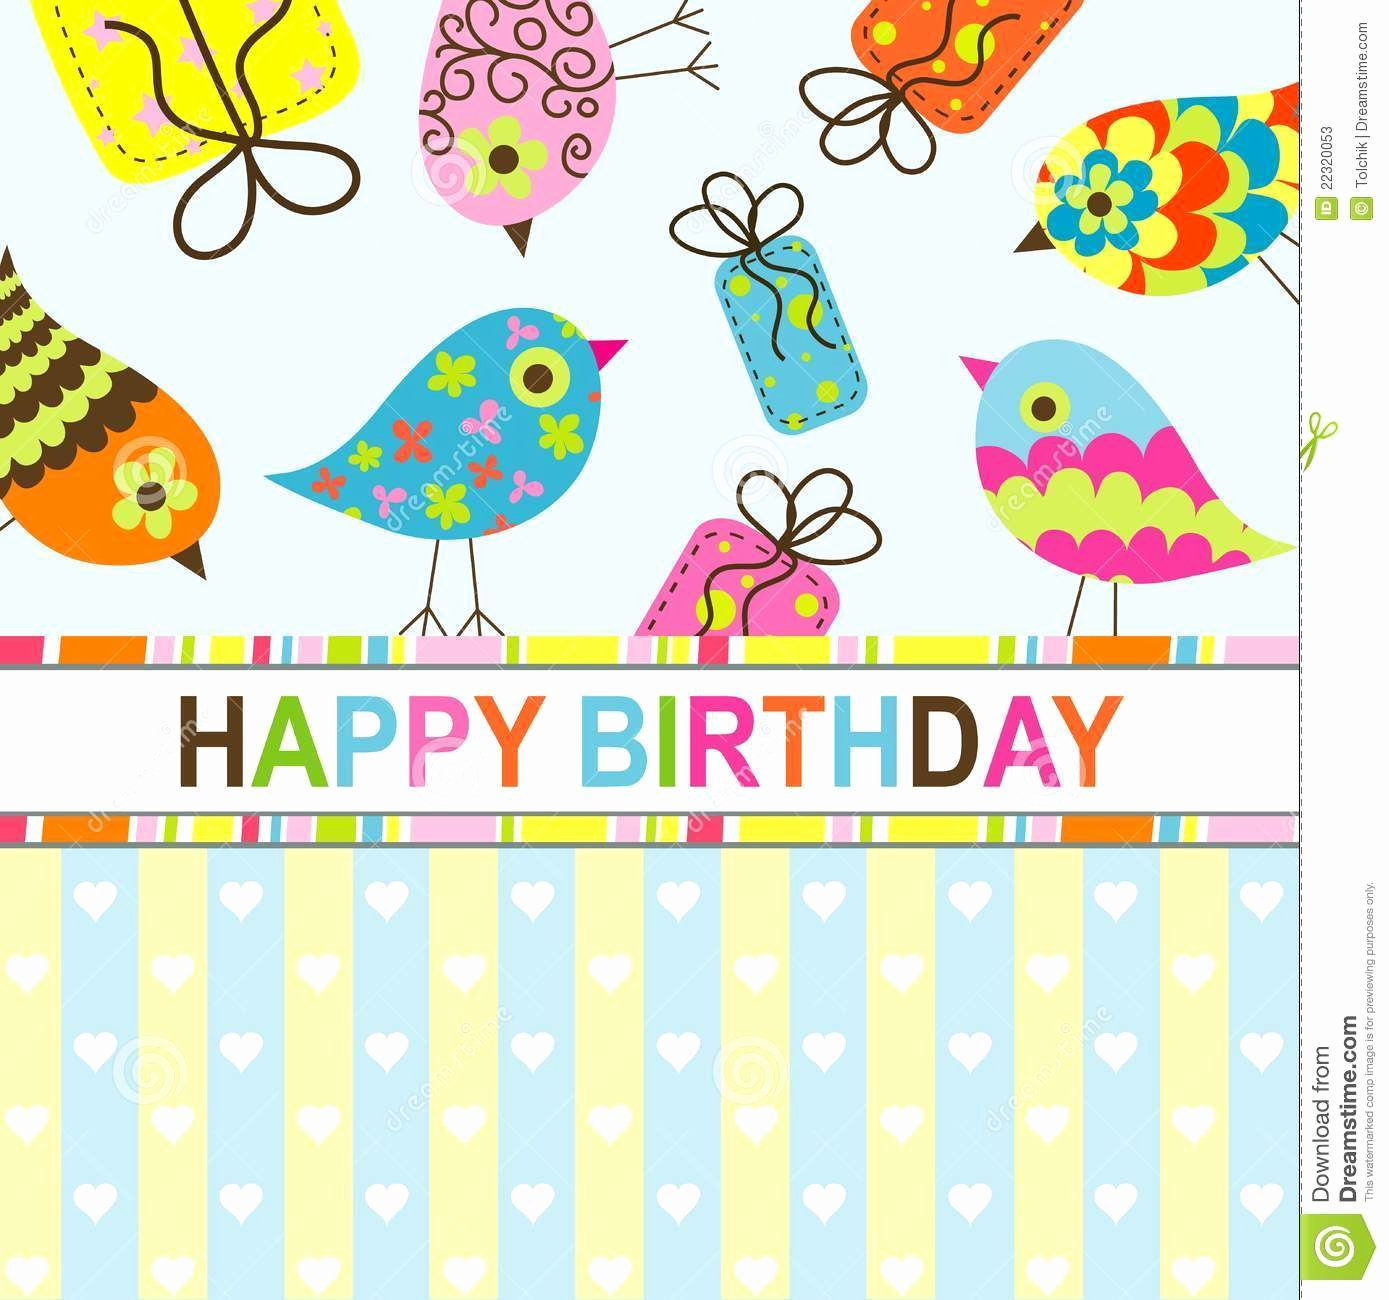 Birthday Card Template Free Luxury Birthday Card Template